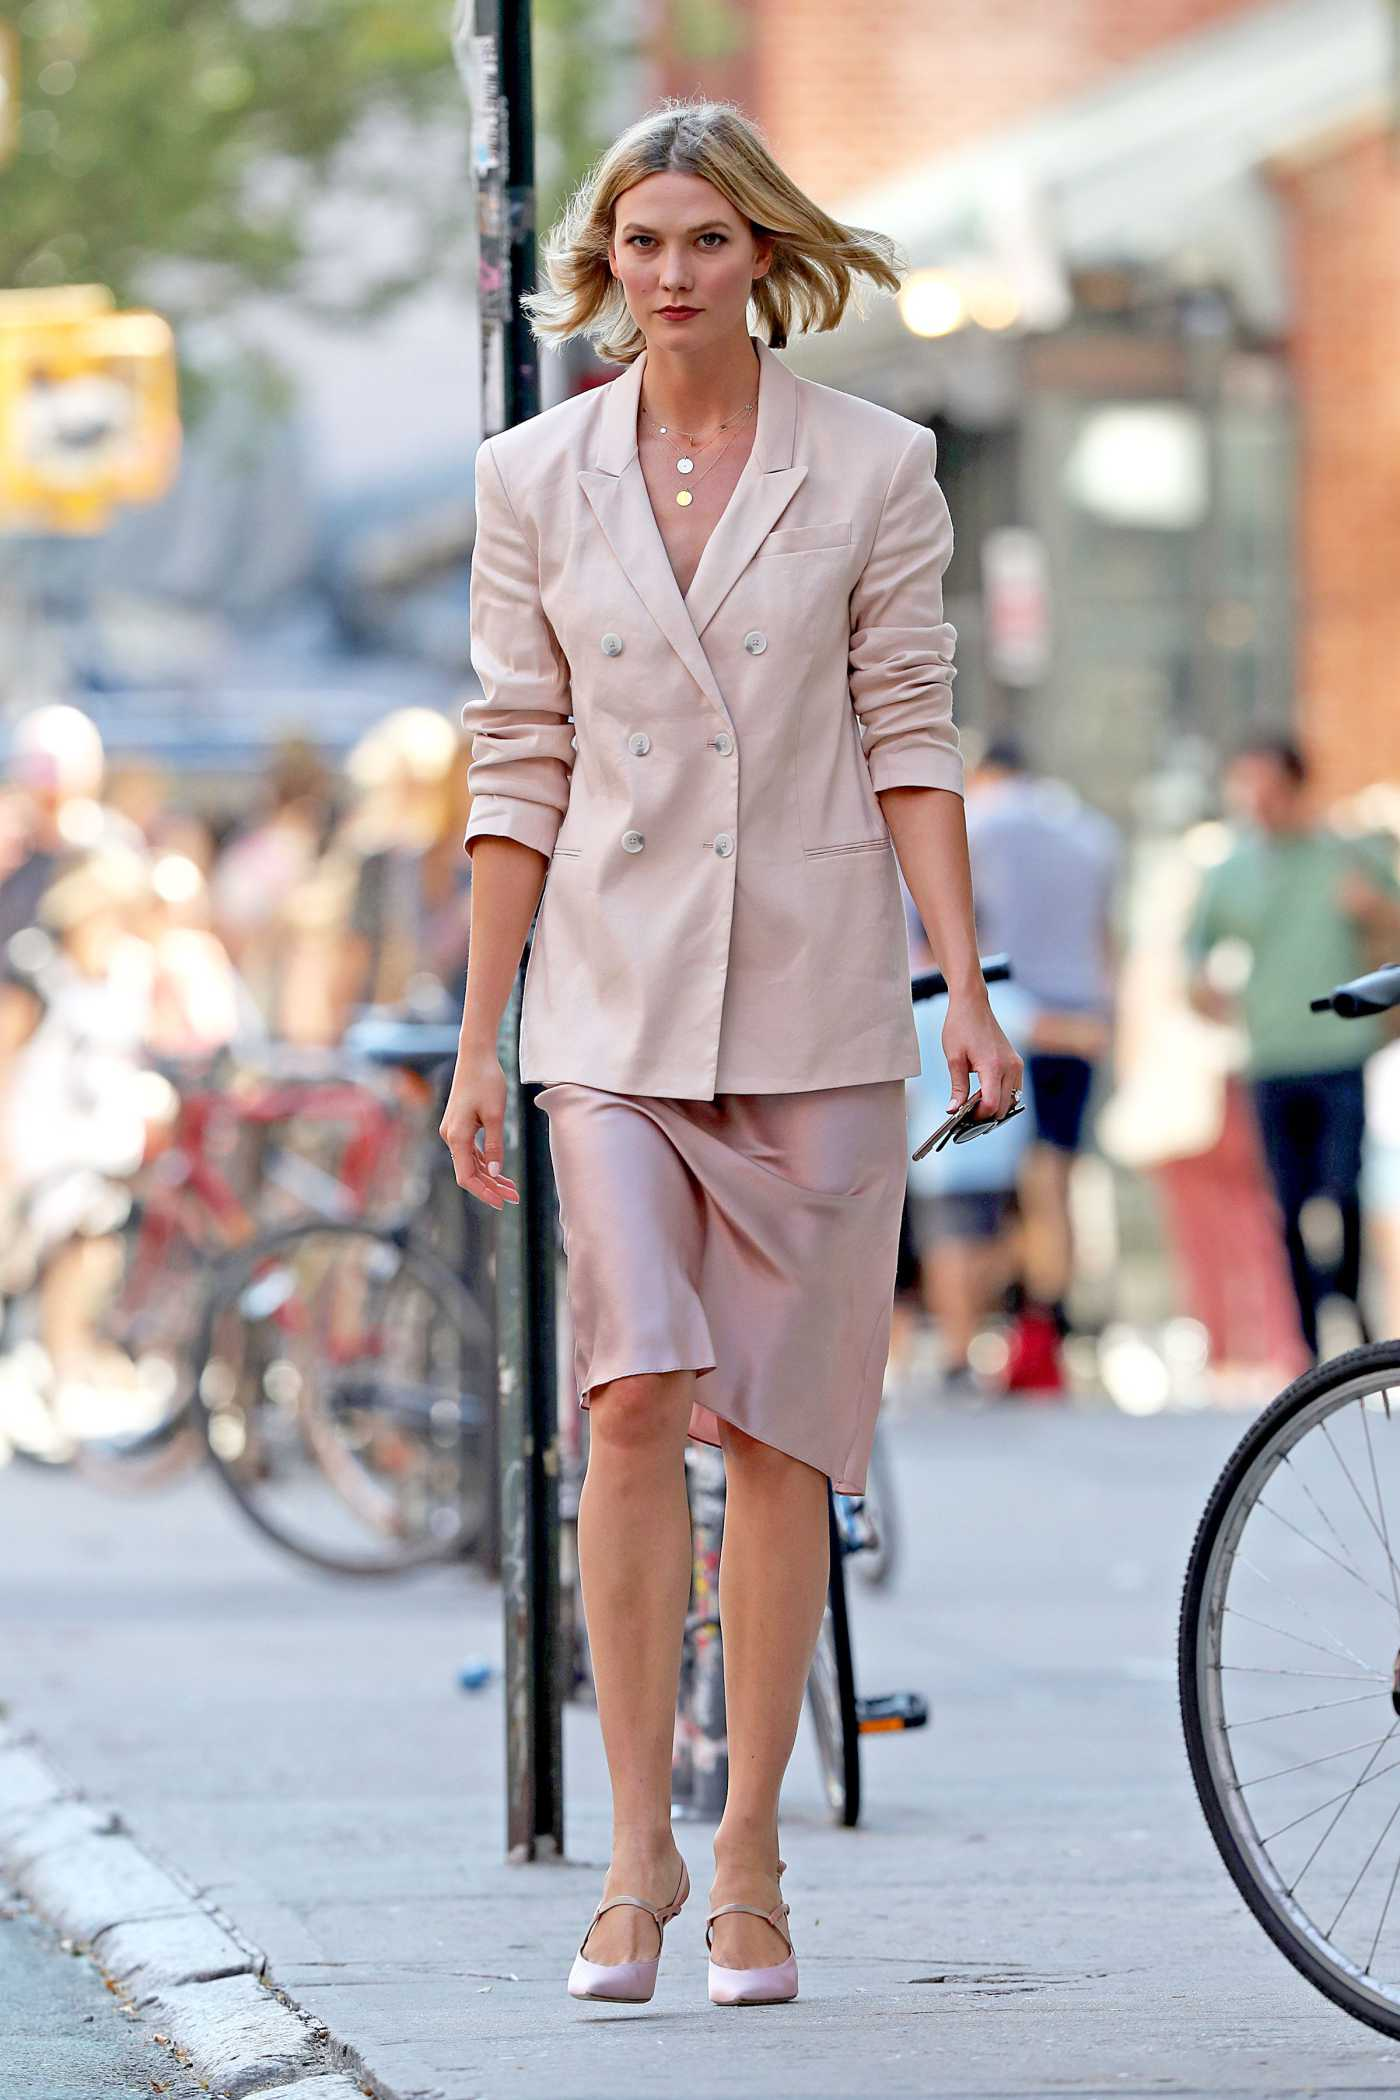 Karlie Kloss in a Pink Blazer Was Seen Out in NY 08/30/2019